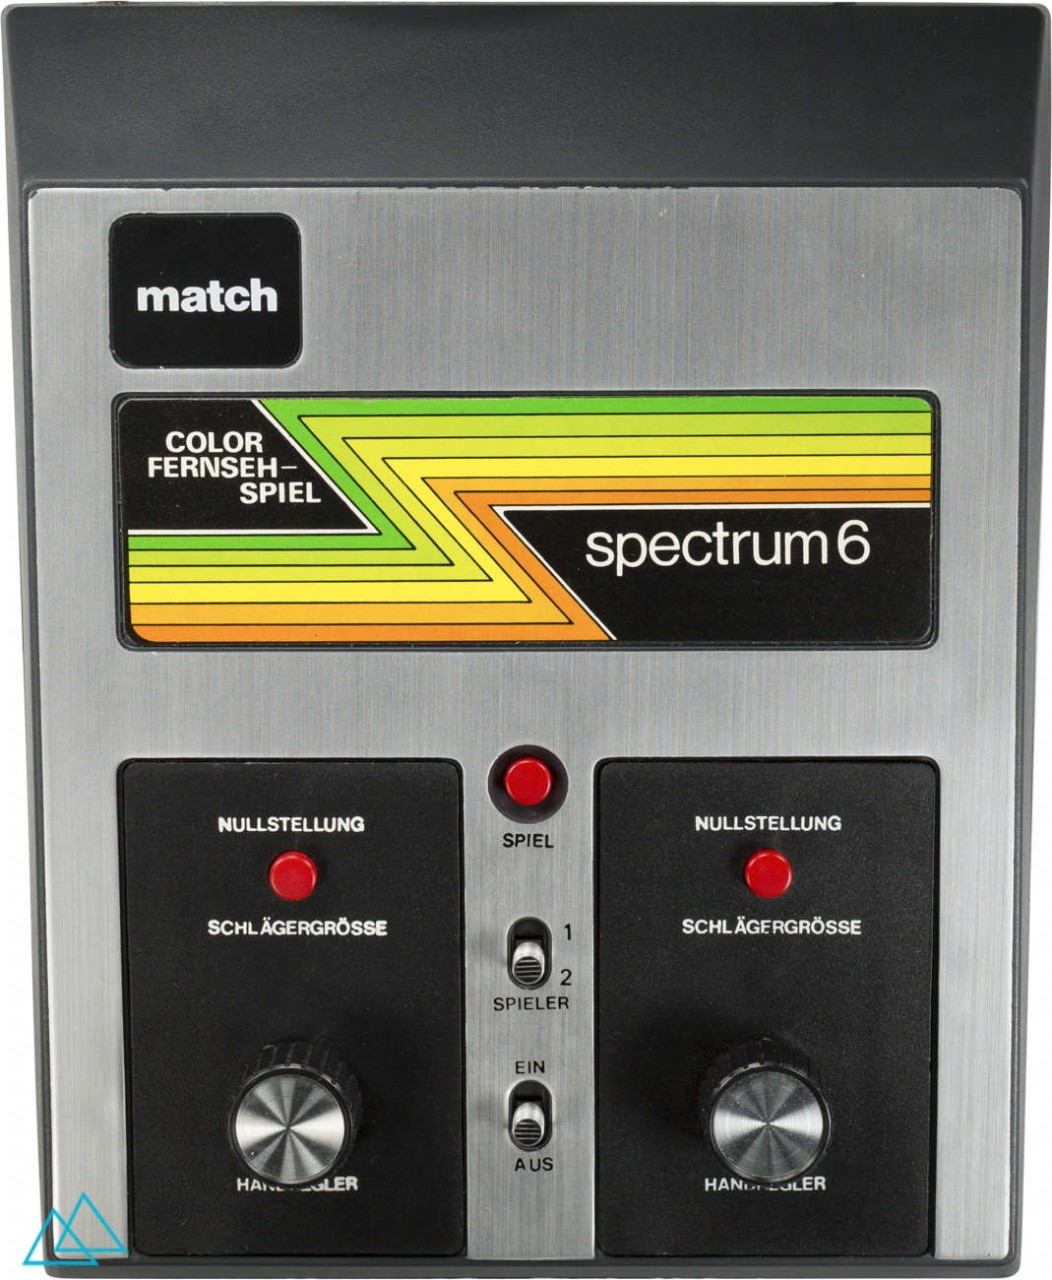 # 115 Pong Match Spectrum